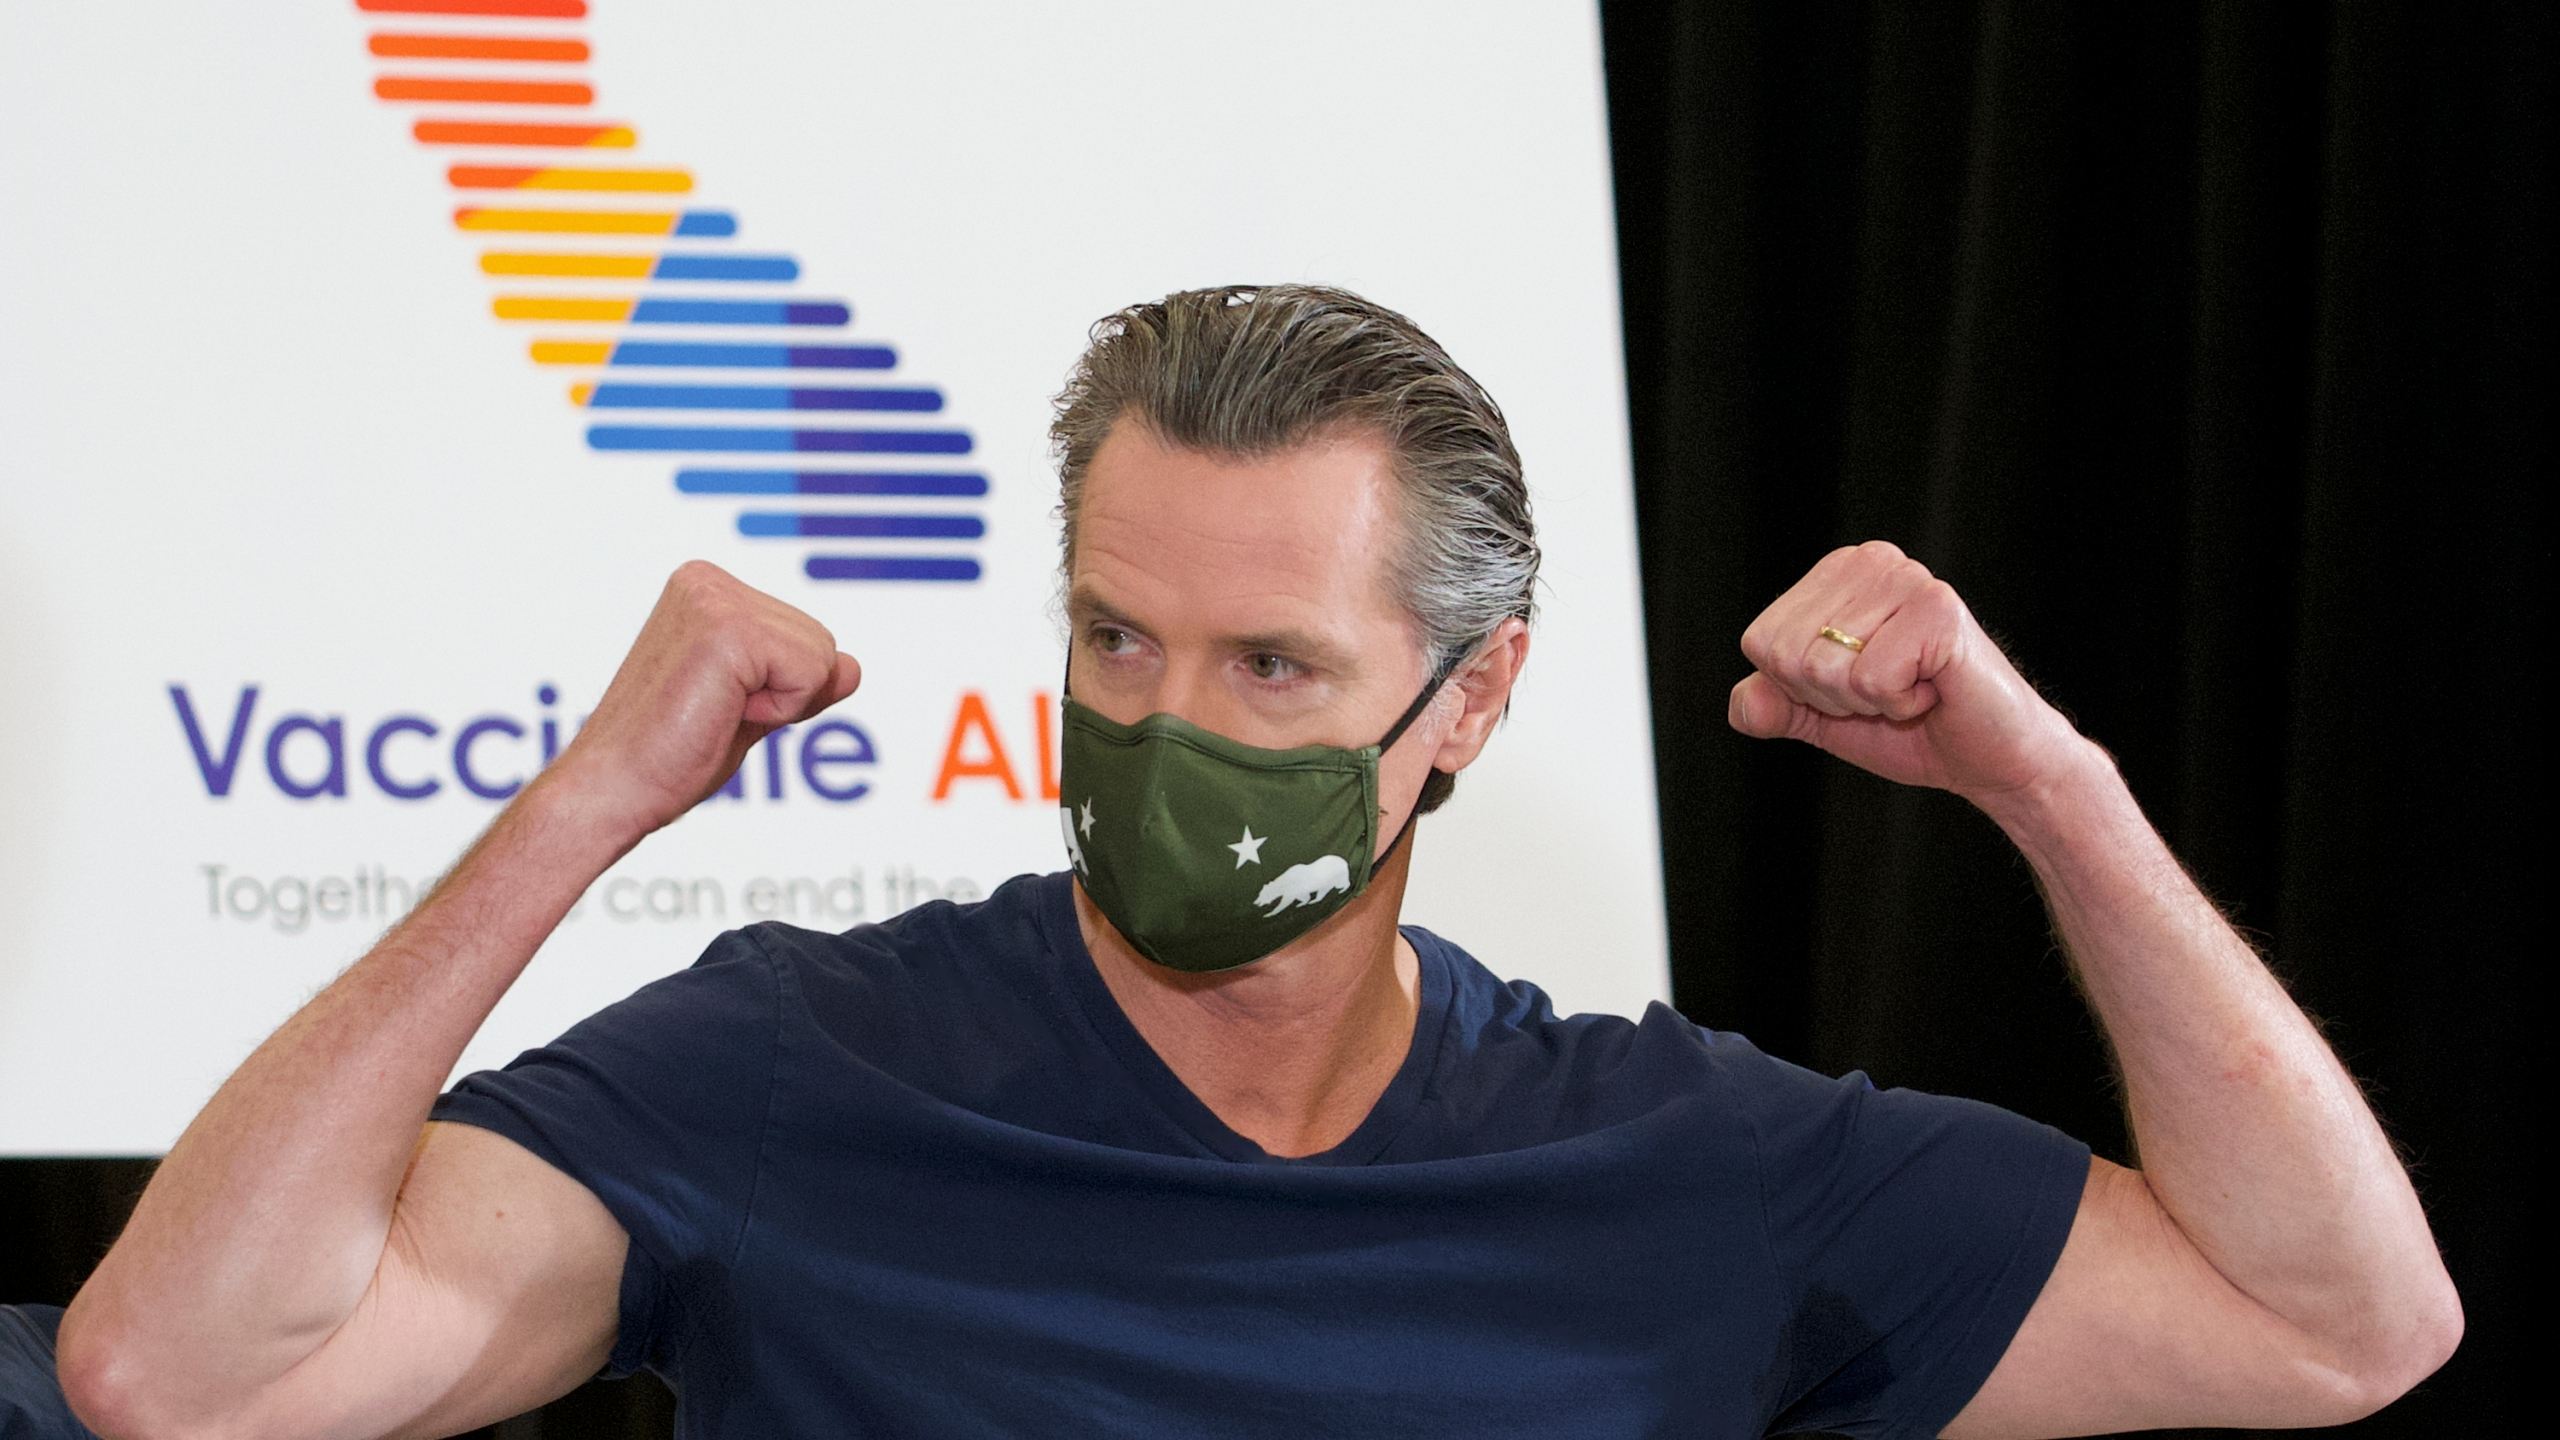 California Gov. Gavin Newsom reacts after being inoculated by Dr. Mark Ghaly, Secretary of California Health and Human Services, with the new one-dose Janssen COVID-19 vaccine at the Baldwin Hills Crenshaw Plaza in Los Angeles on April 1, 2021. (AP Photo/Damian Dovarganes)